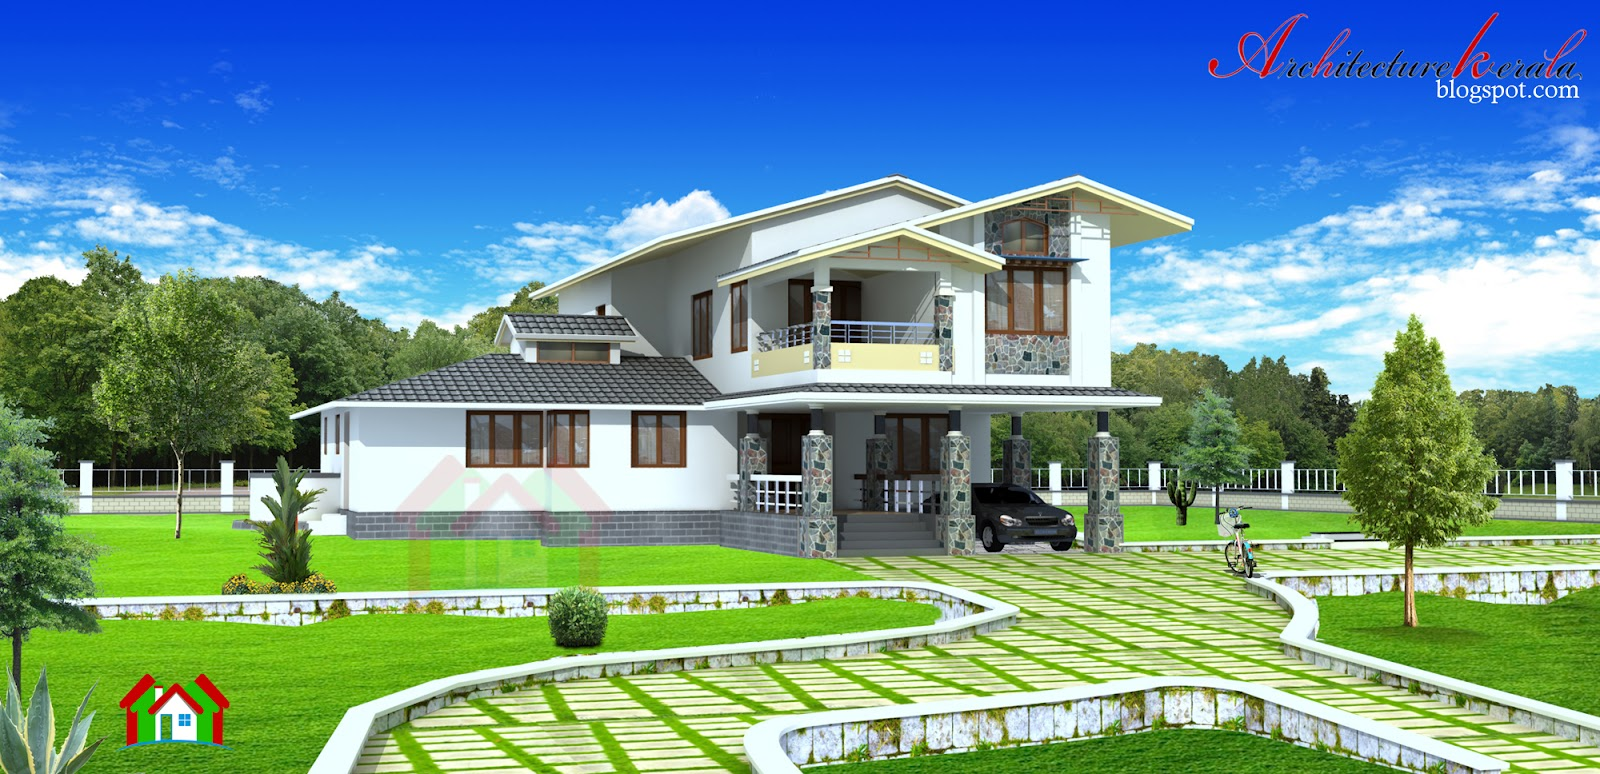 Architecture kerala 2500 sq ft kerala style house design for 2500 sq ft house plans in kerala